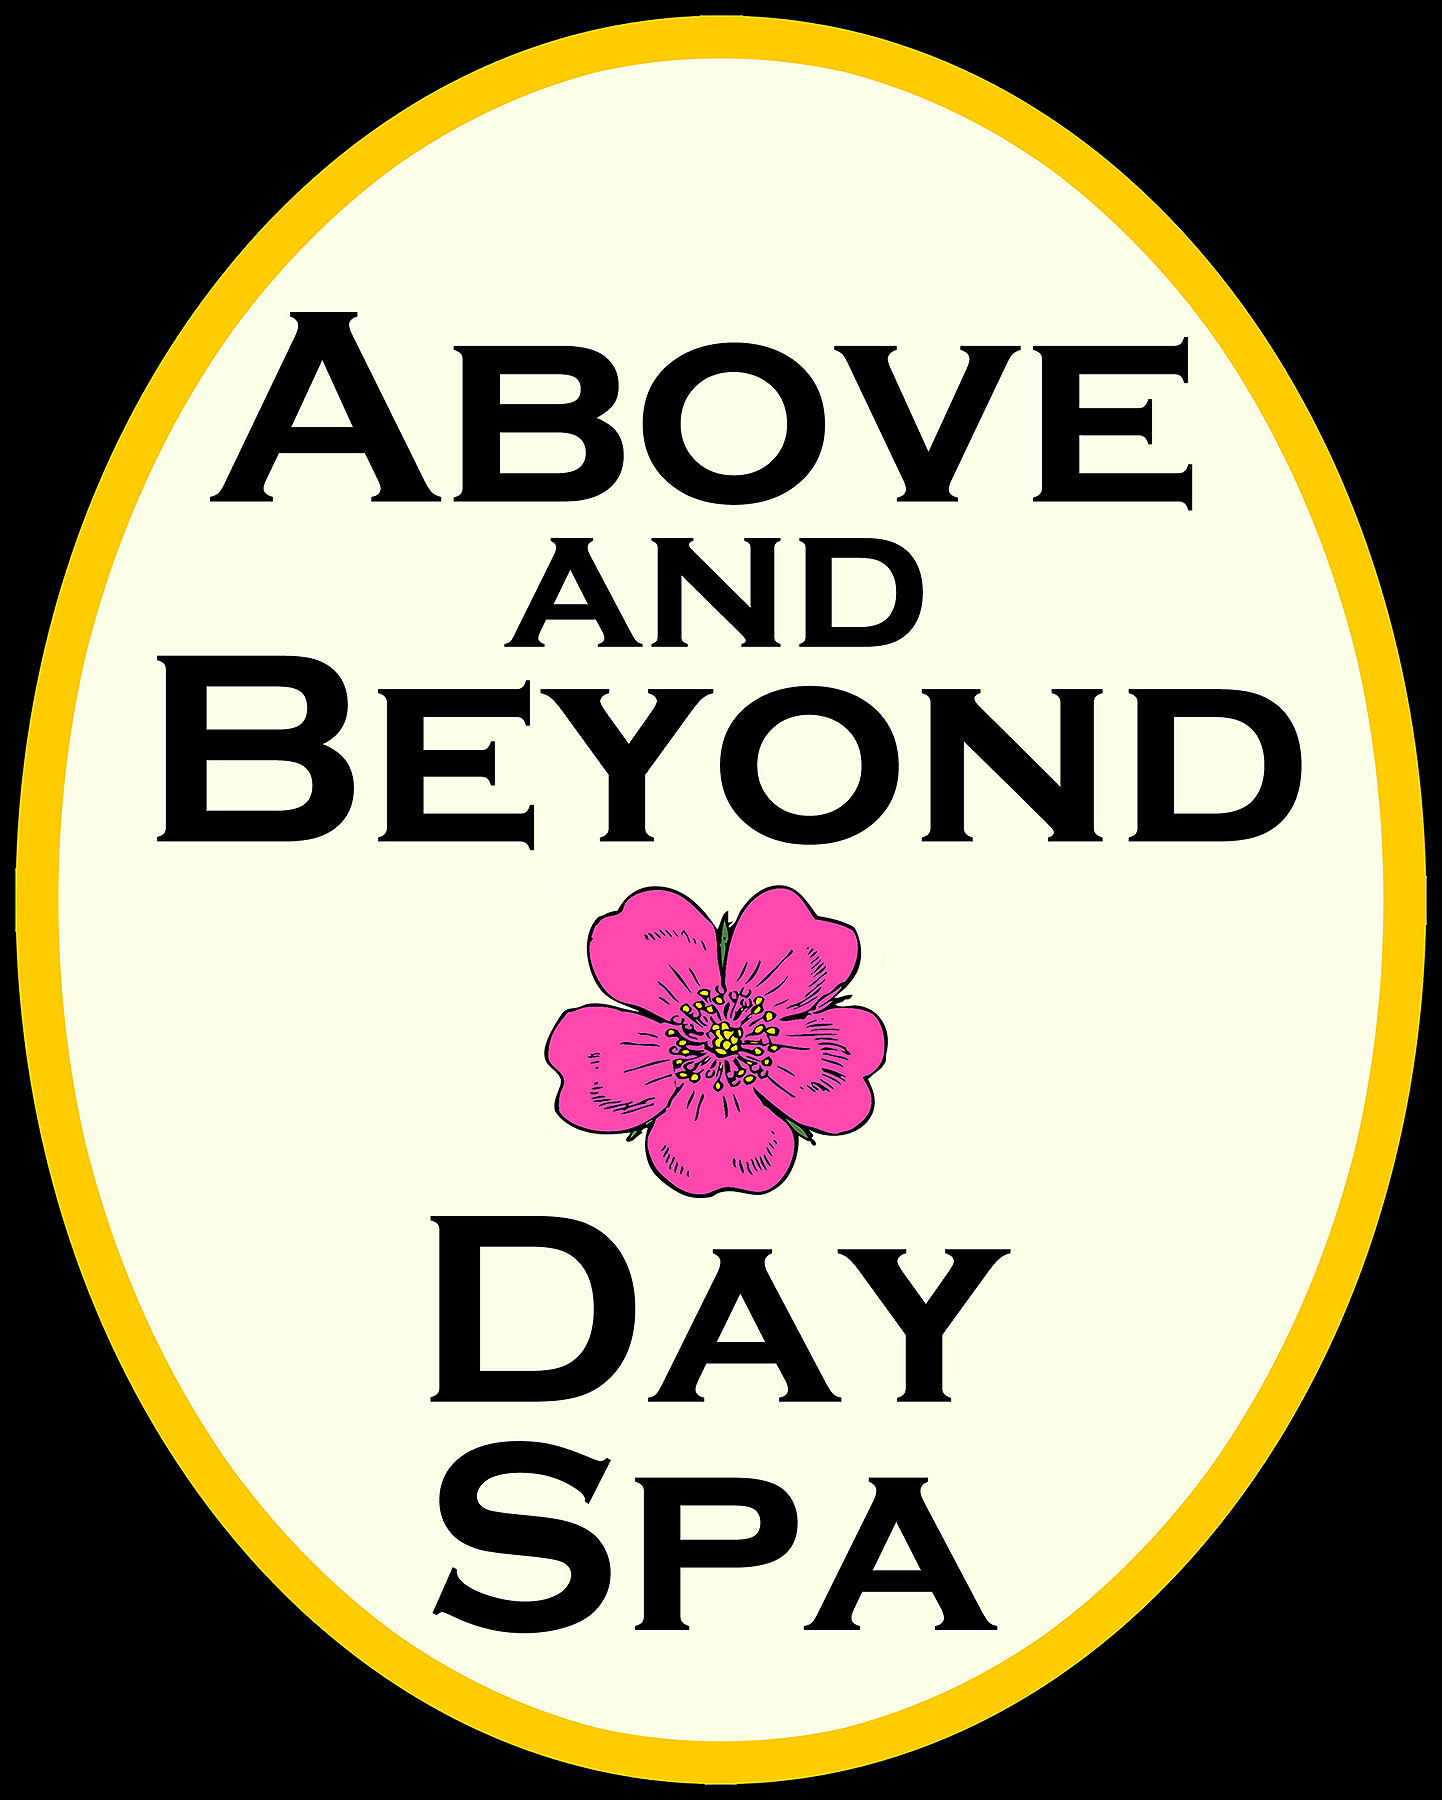 Above and beyond day spa fredericksburg texas for Above and beyond beauty salon